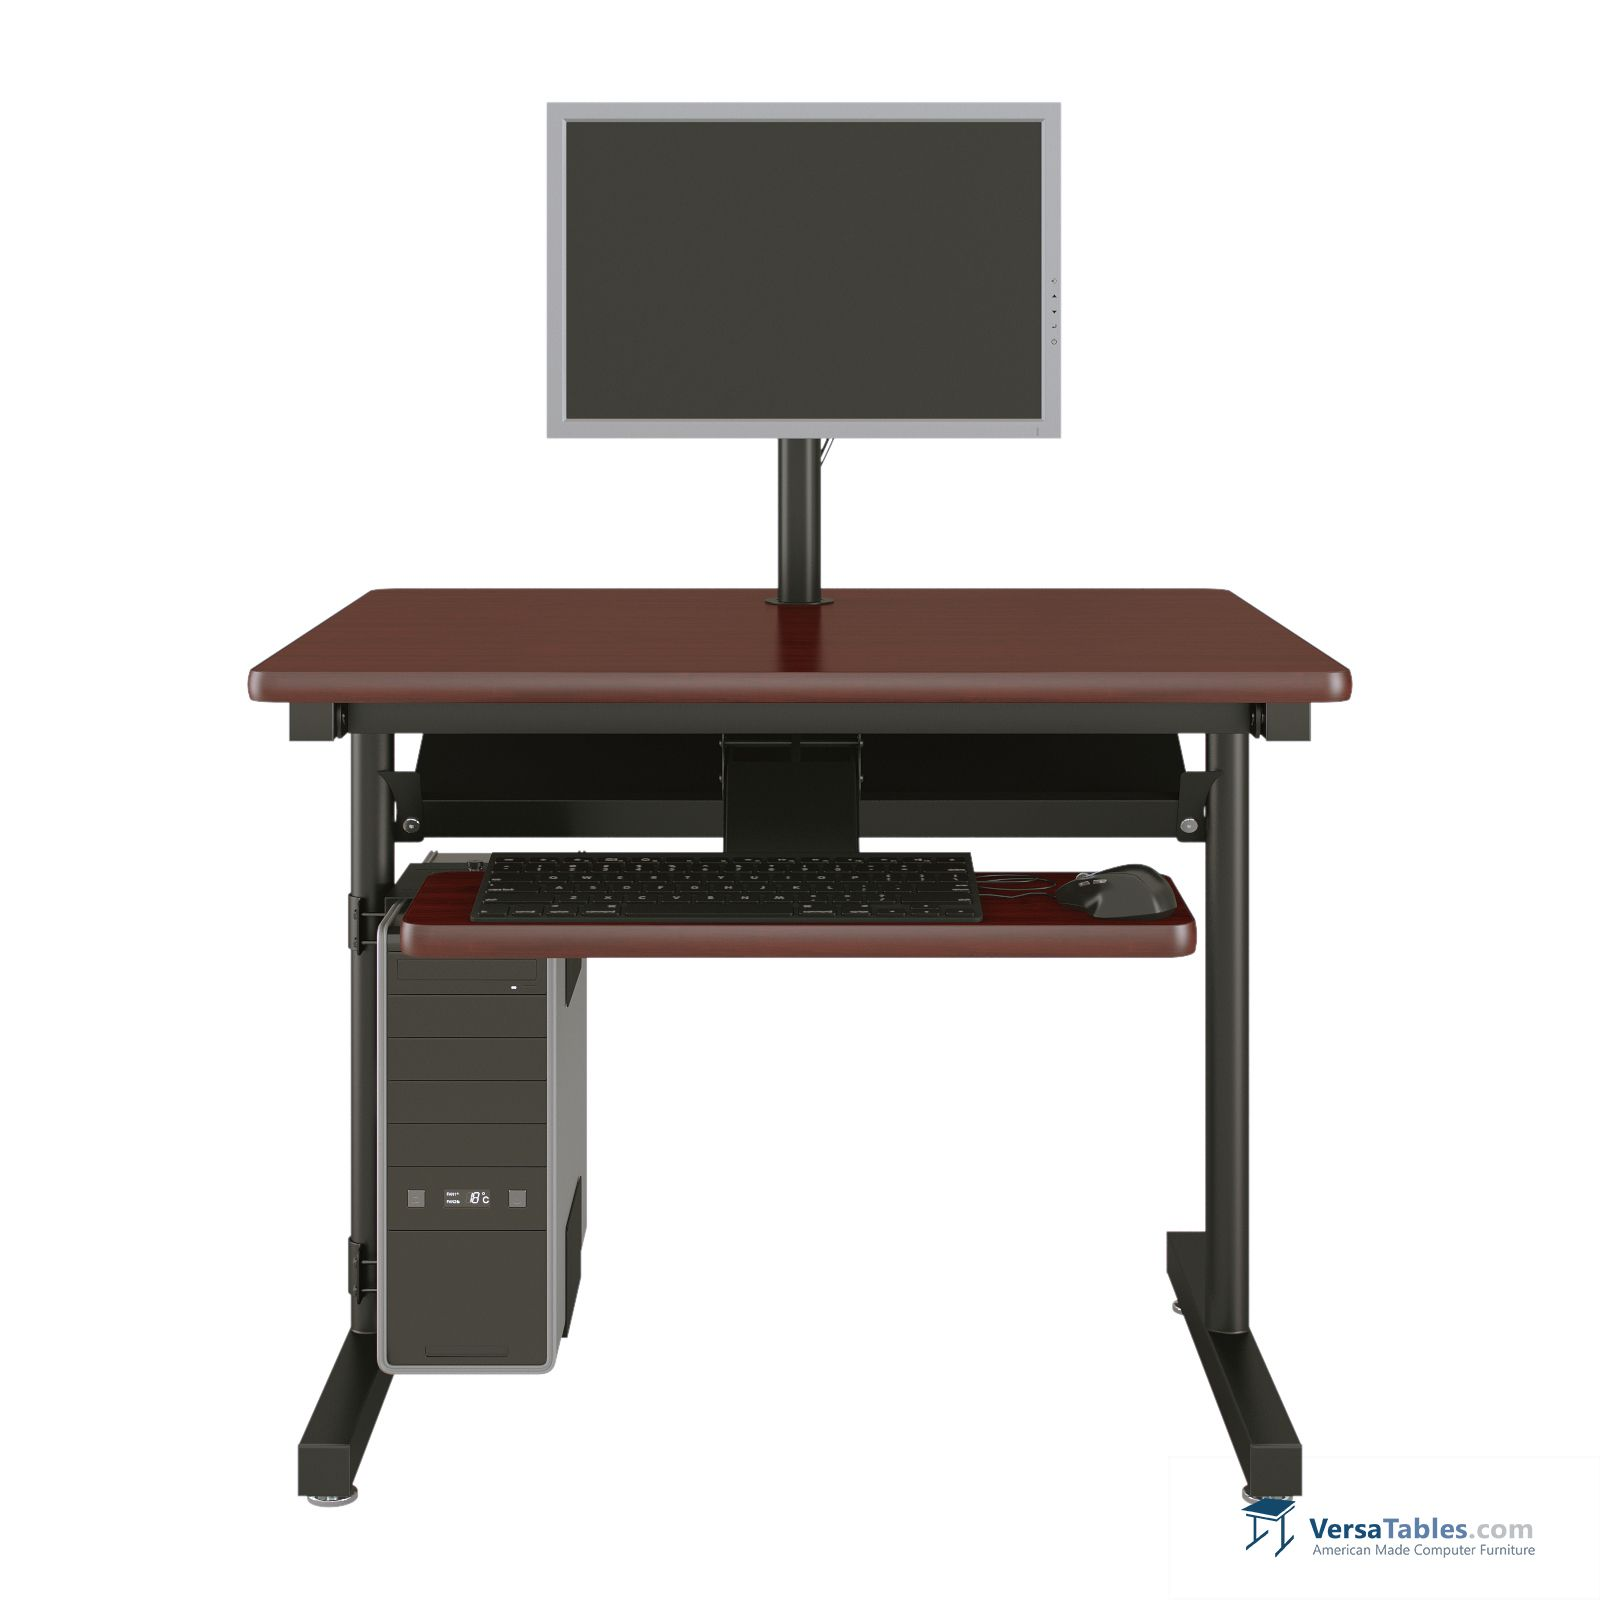 Basic Computer Table Bct Series By Versa Tables Office Furniture